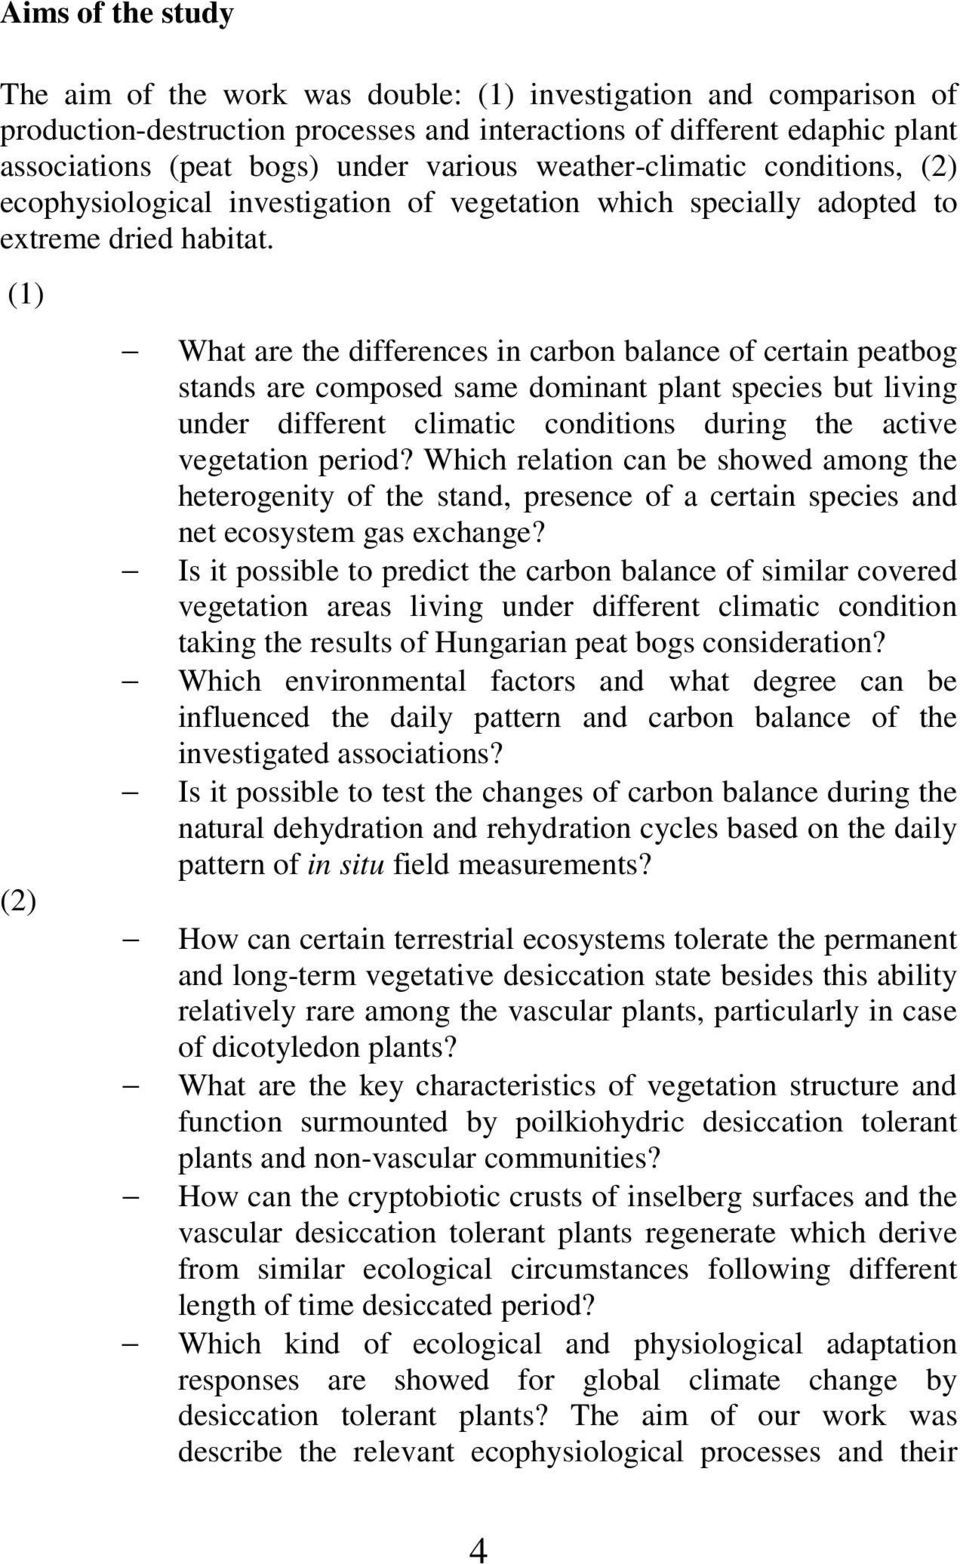 (1) (2) What are the differences in carbon balance of certain peatbog stands are composed same dominant plant species but living under different climatic conditions during the active vegetation